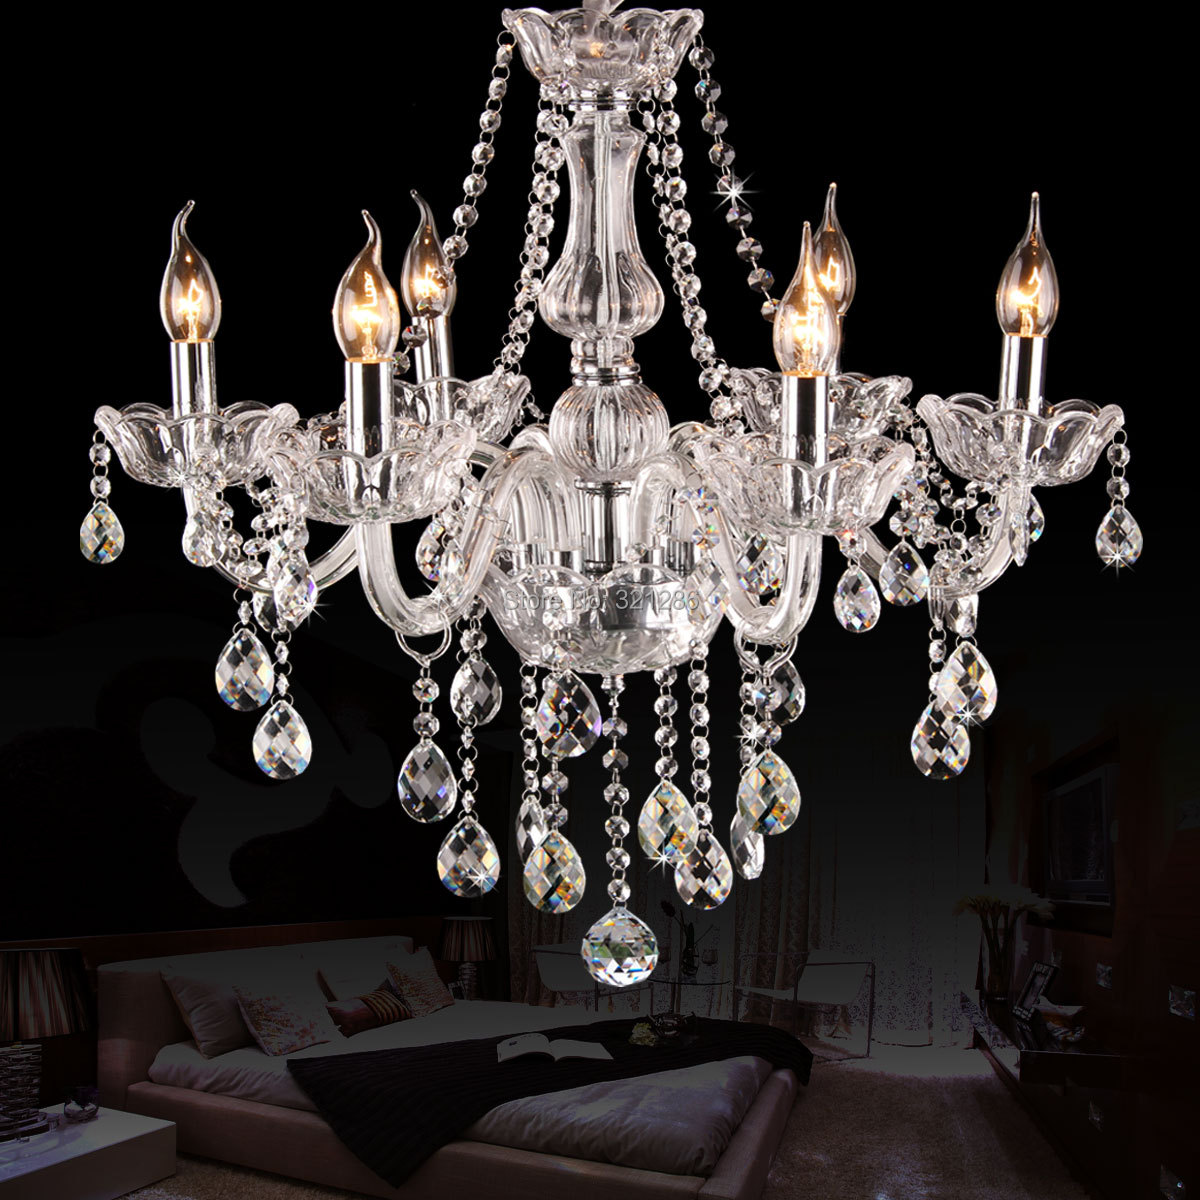 6 arms K9 crystal chandelier European Candle Crystal Chandeliers Bedroom Living Room Modern chandelier